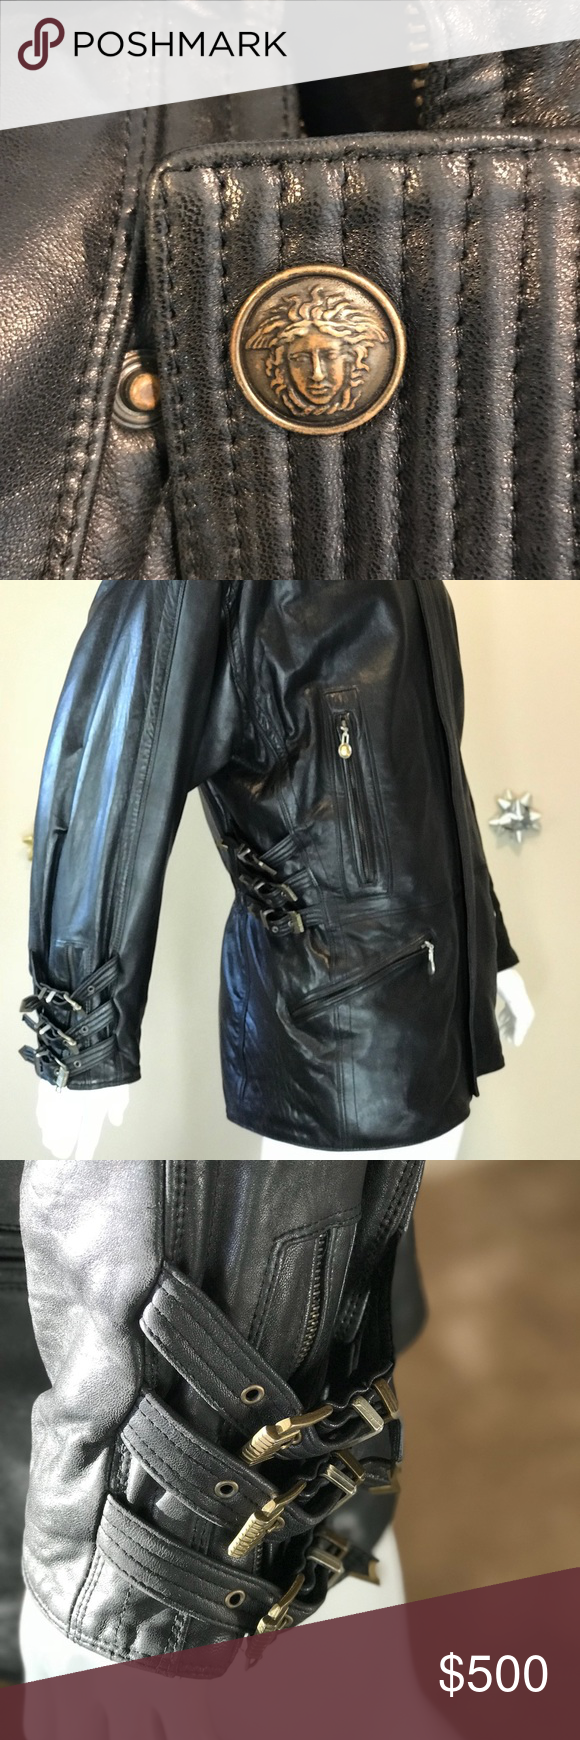 Gianni Versace Vintage Leather Jacket Certified Genuine